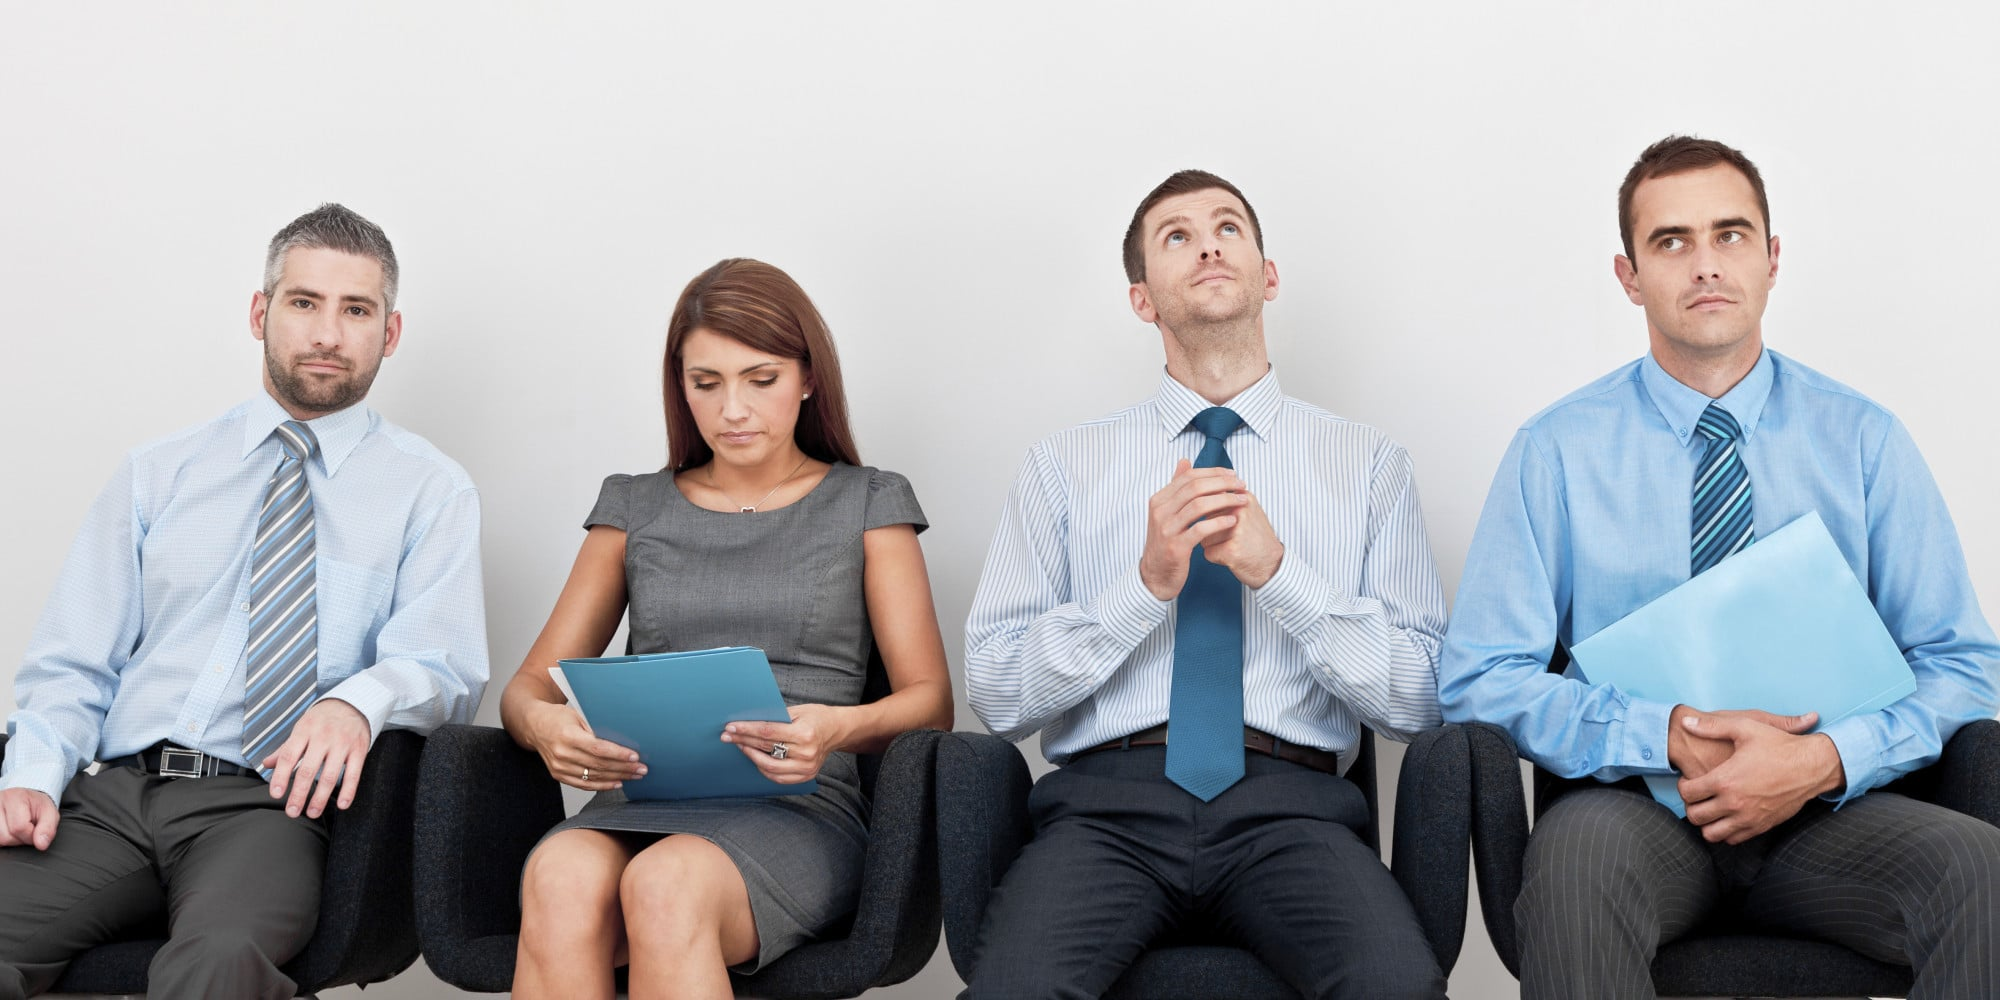 job interview archives smart career guides job interviewing preparation the winning approach